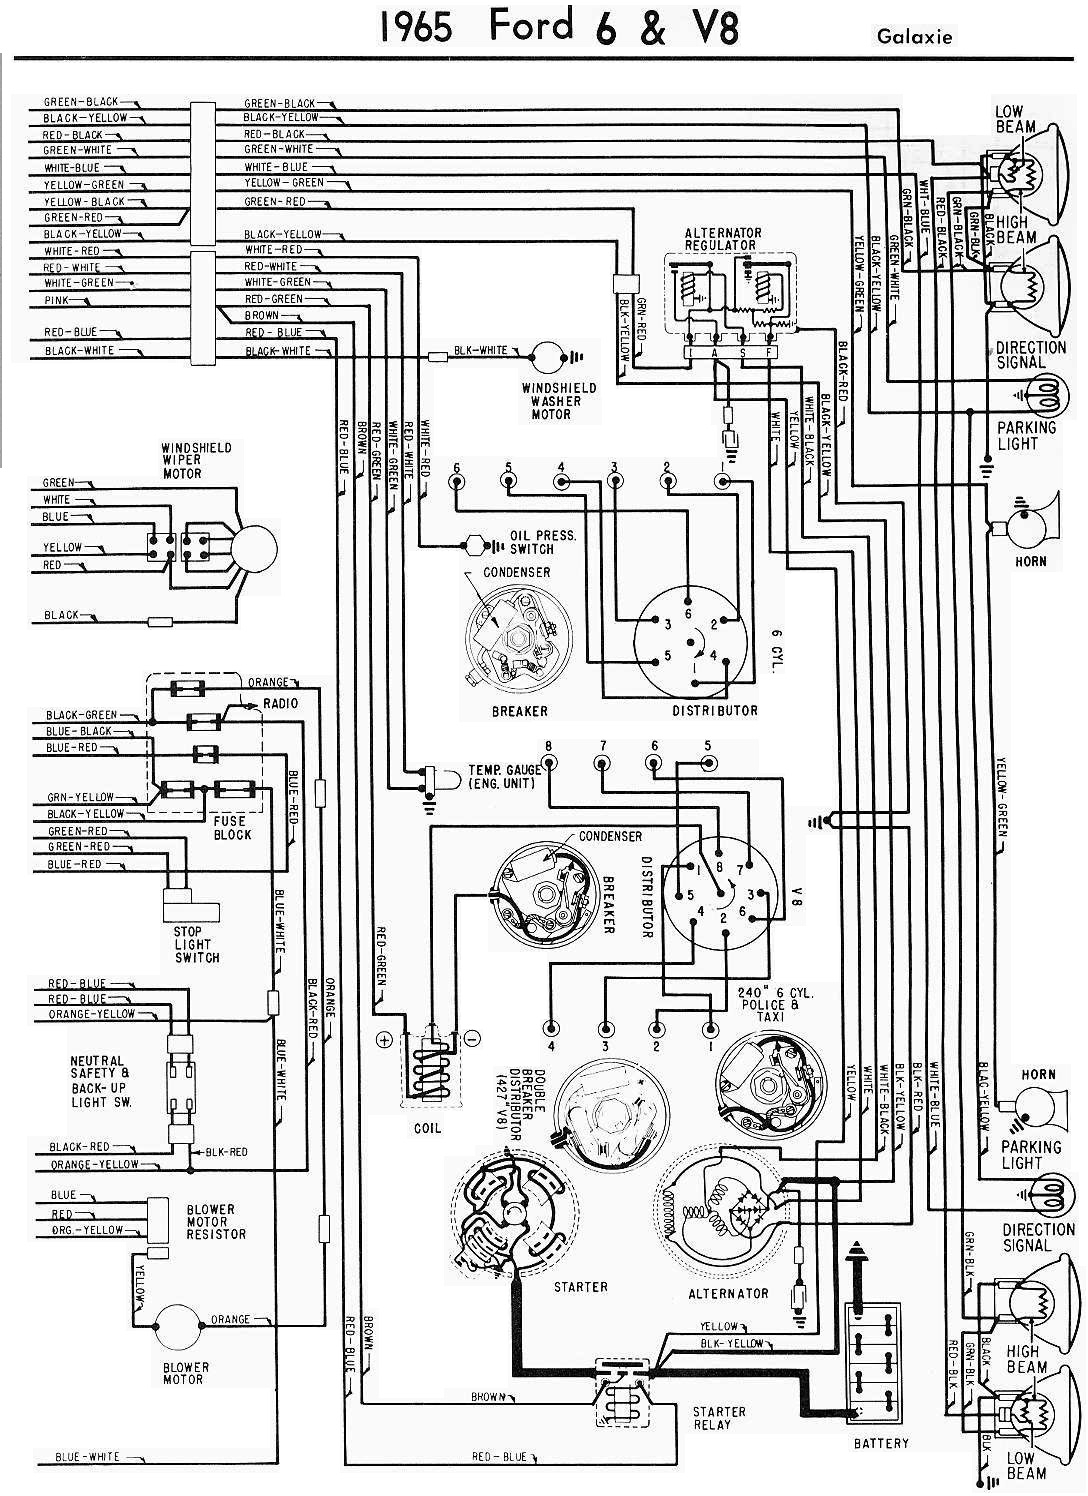 1965 ford galaxie complete electrical wiring diagram part ford tractor ignition switch wiring 1956 ford wiring [ 1088 x 1496 Pixel ]